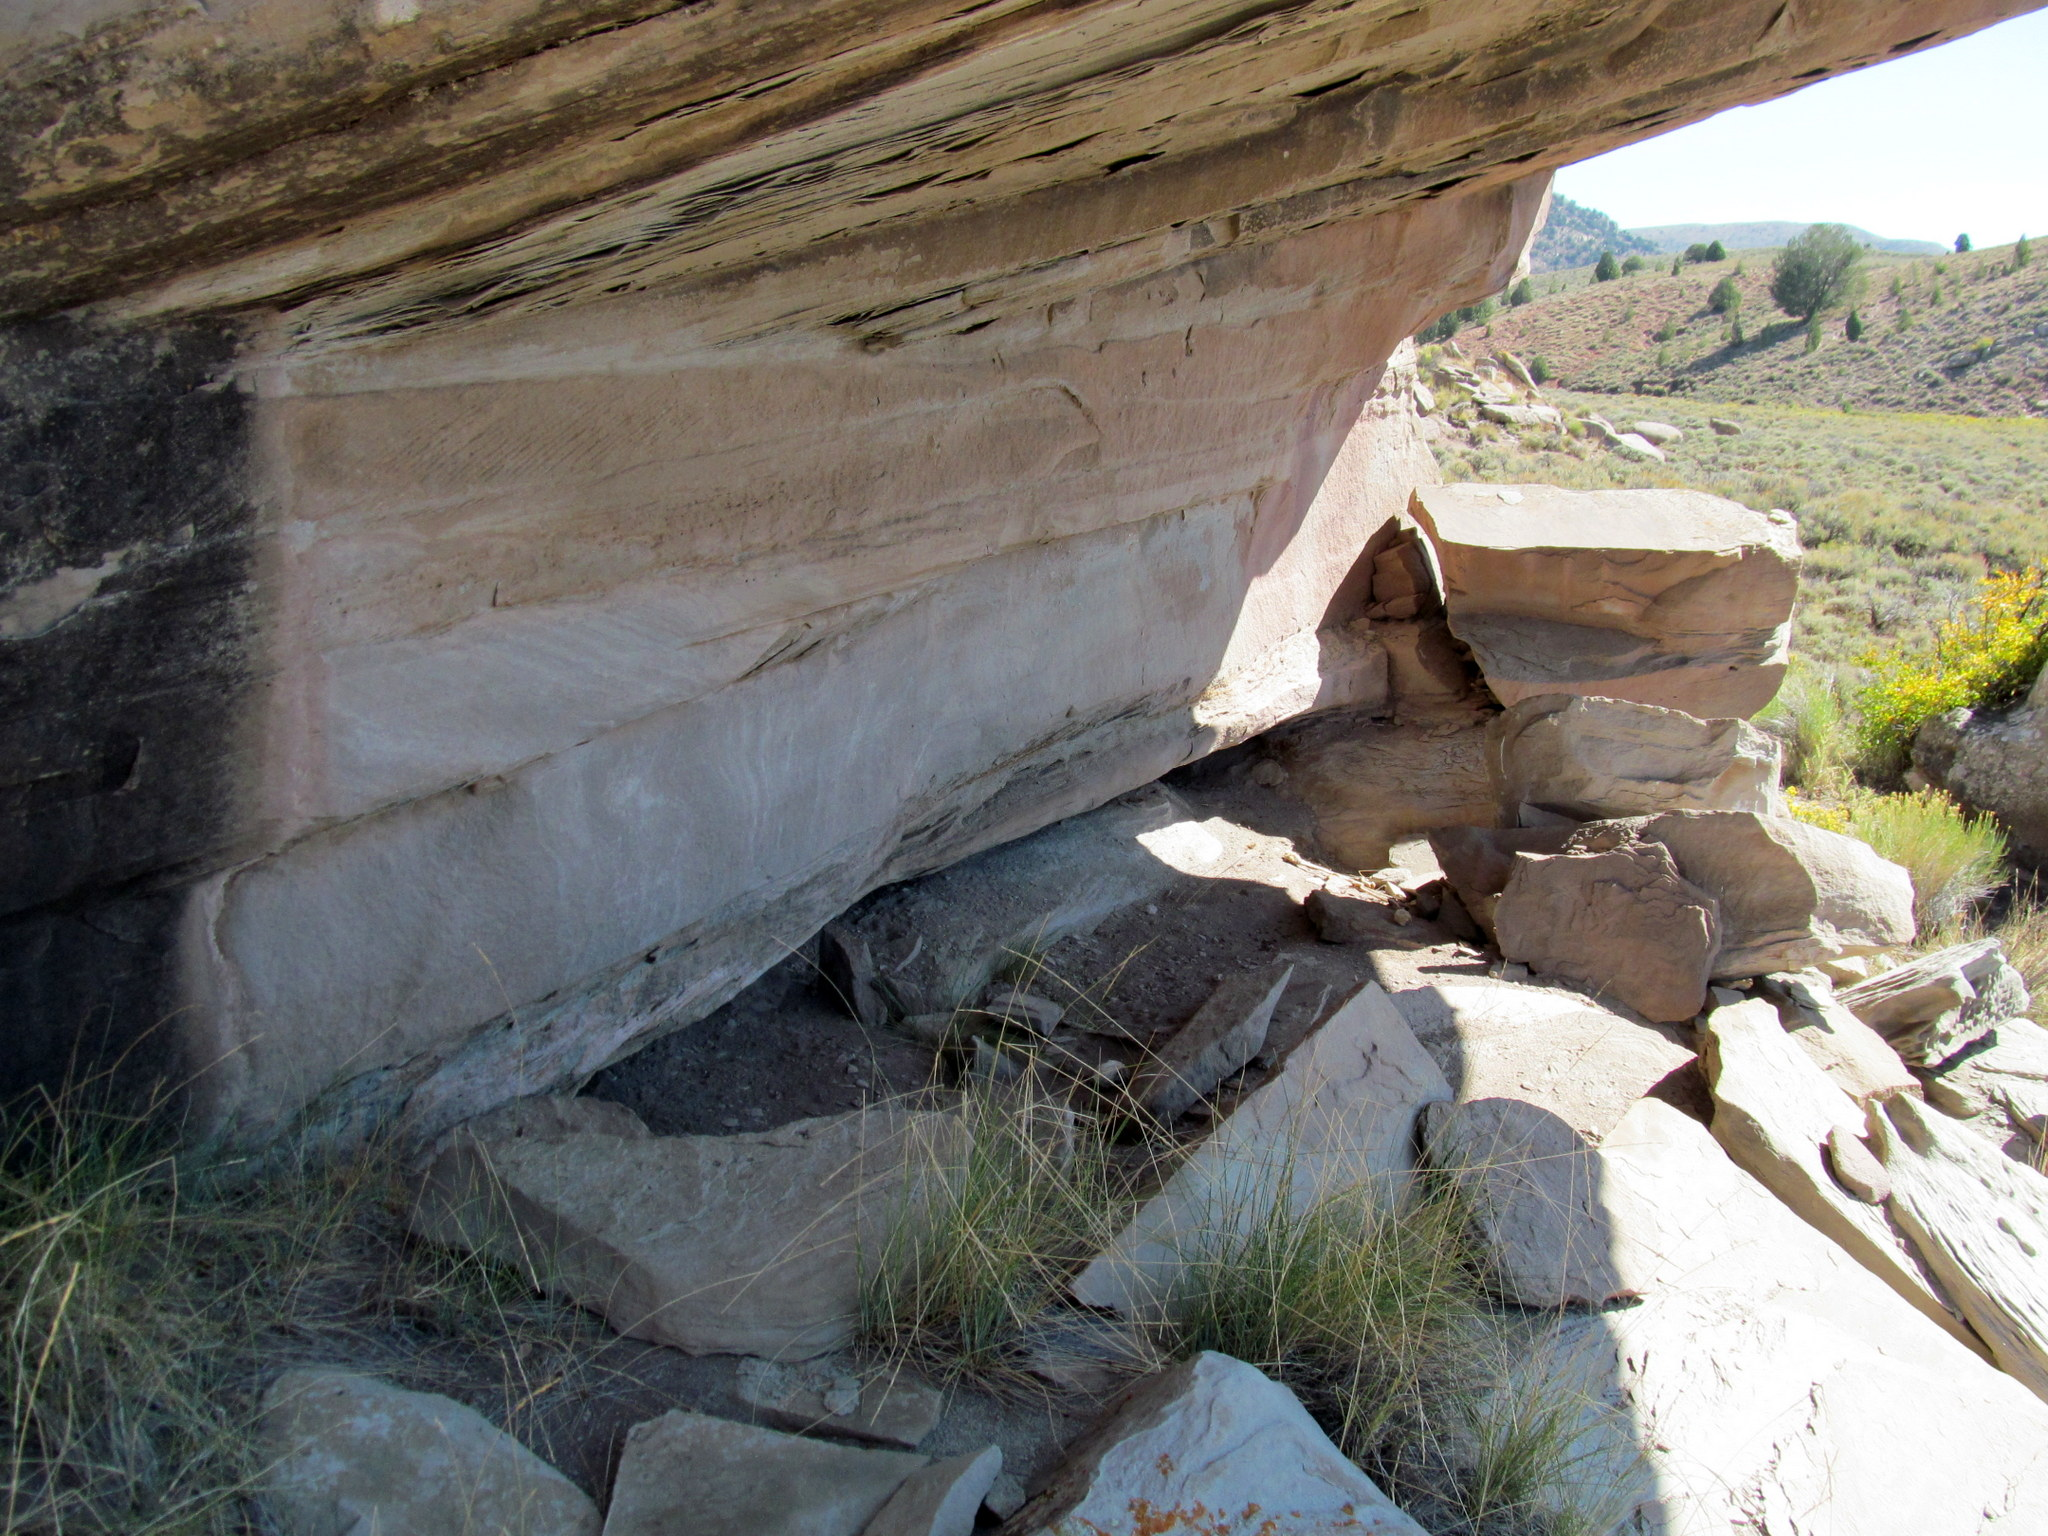 Photo: Rock shelter beneath an overhang